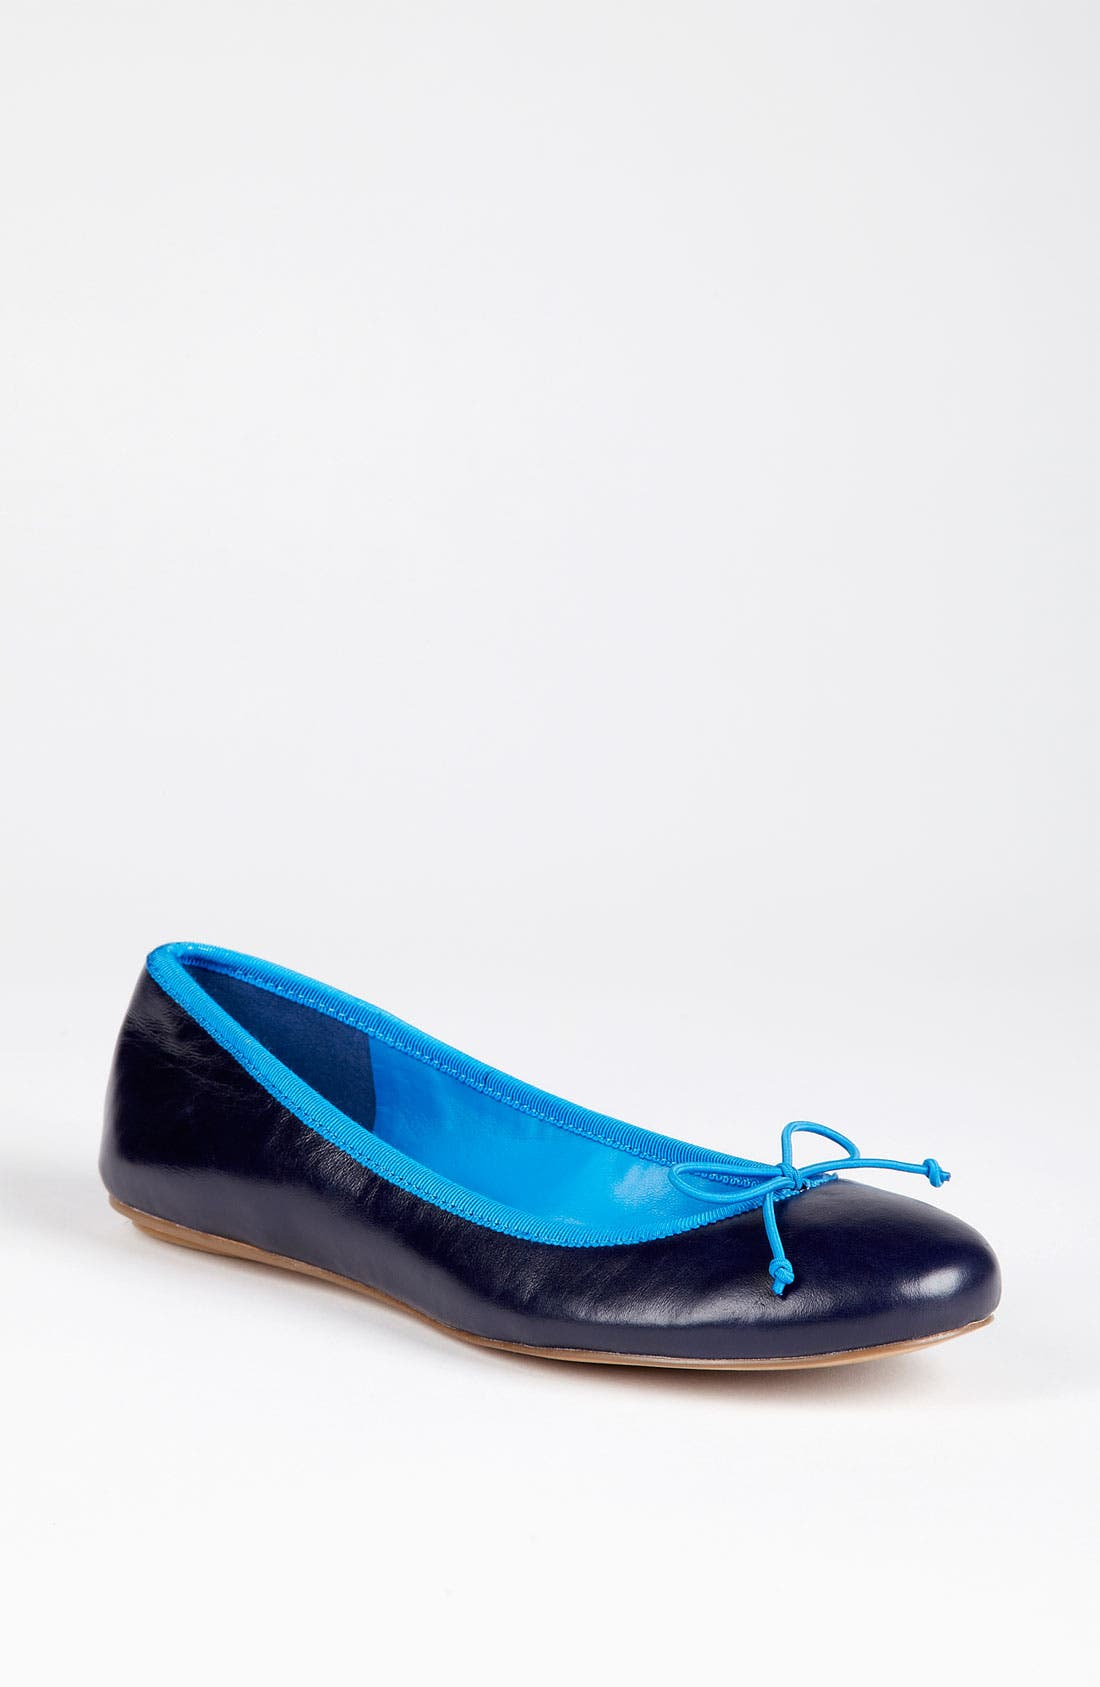 Main Image - Sole Society 'Poppy' Flat (Online Exclusive)